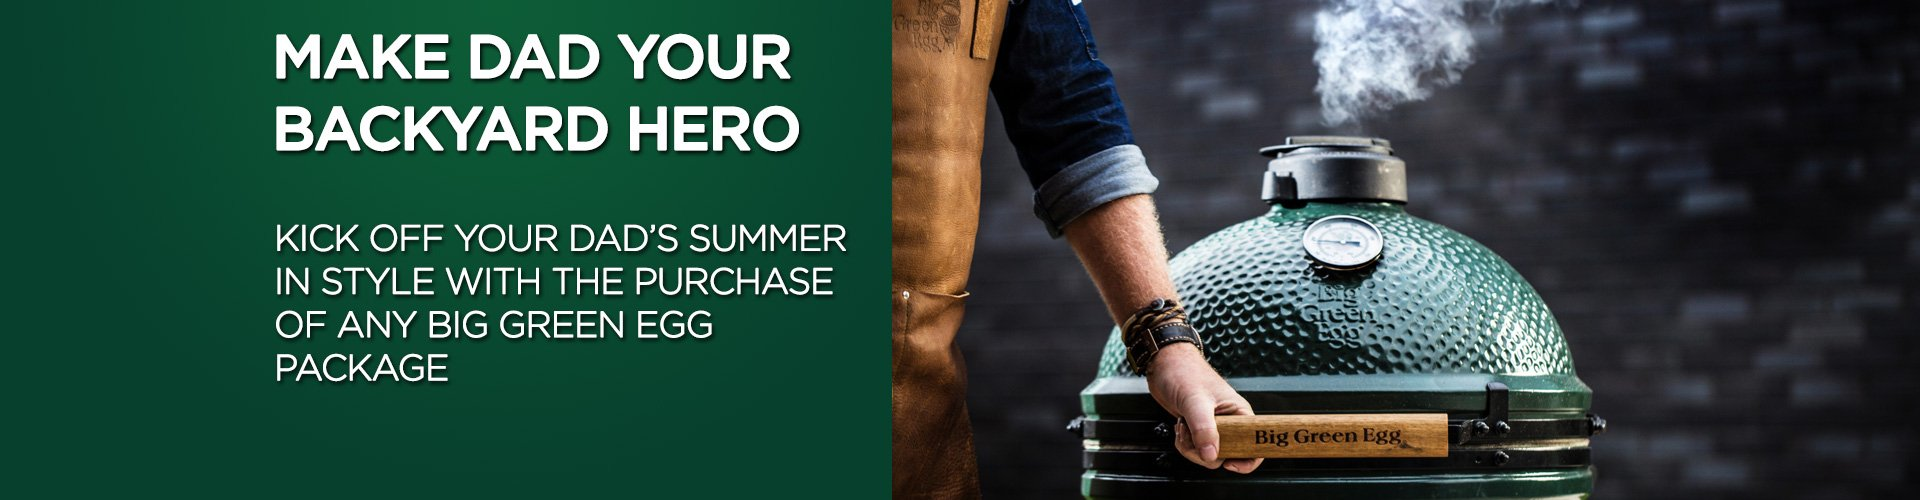 Make dad your backyard hero and kick off his summer in style with the purchase of any big green egg package